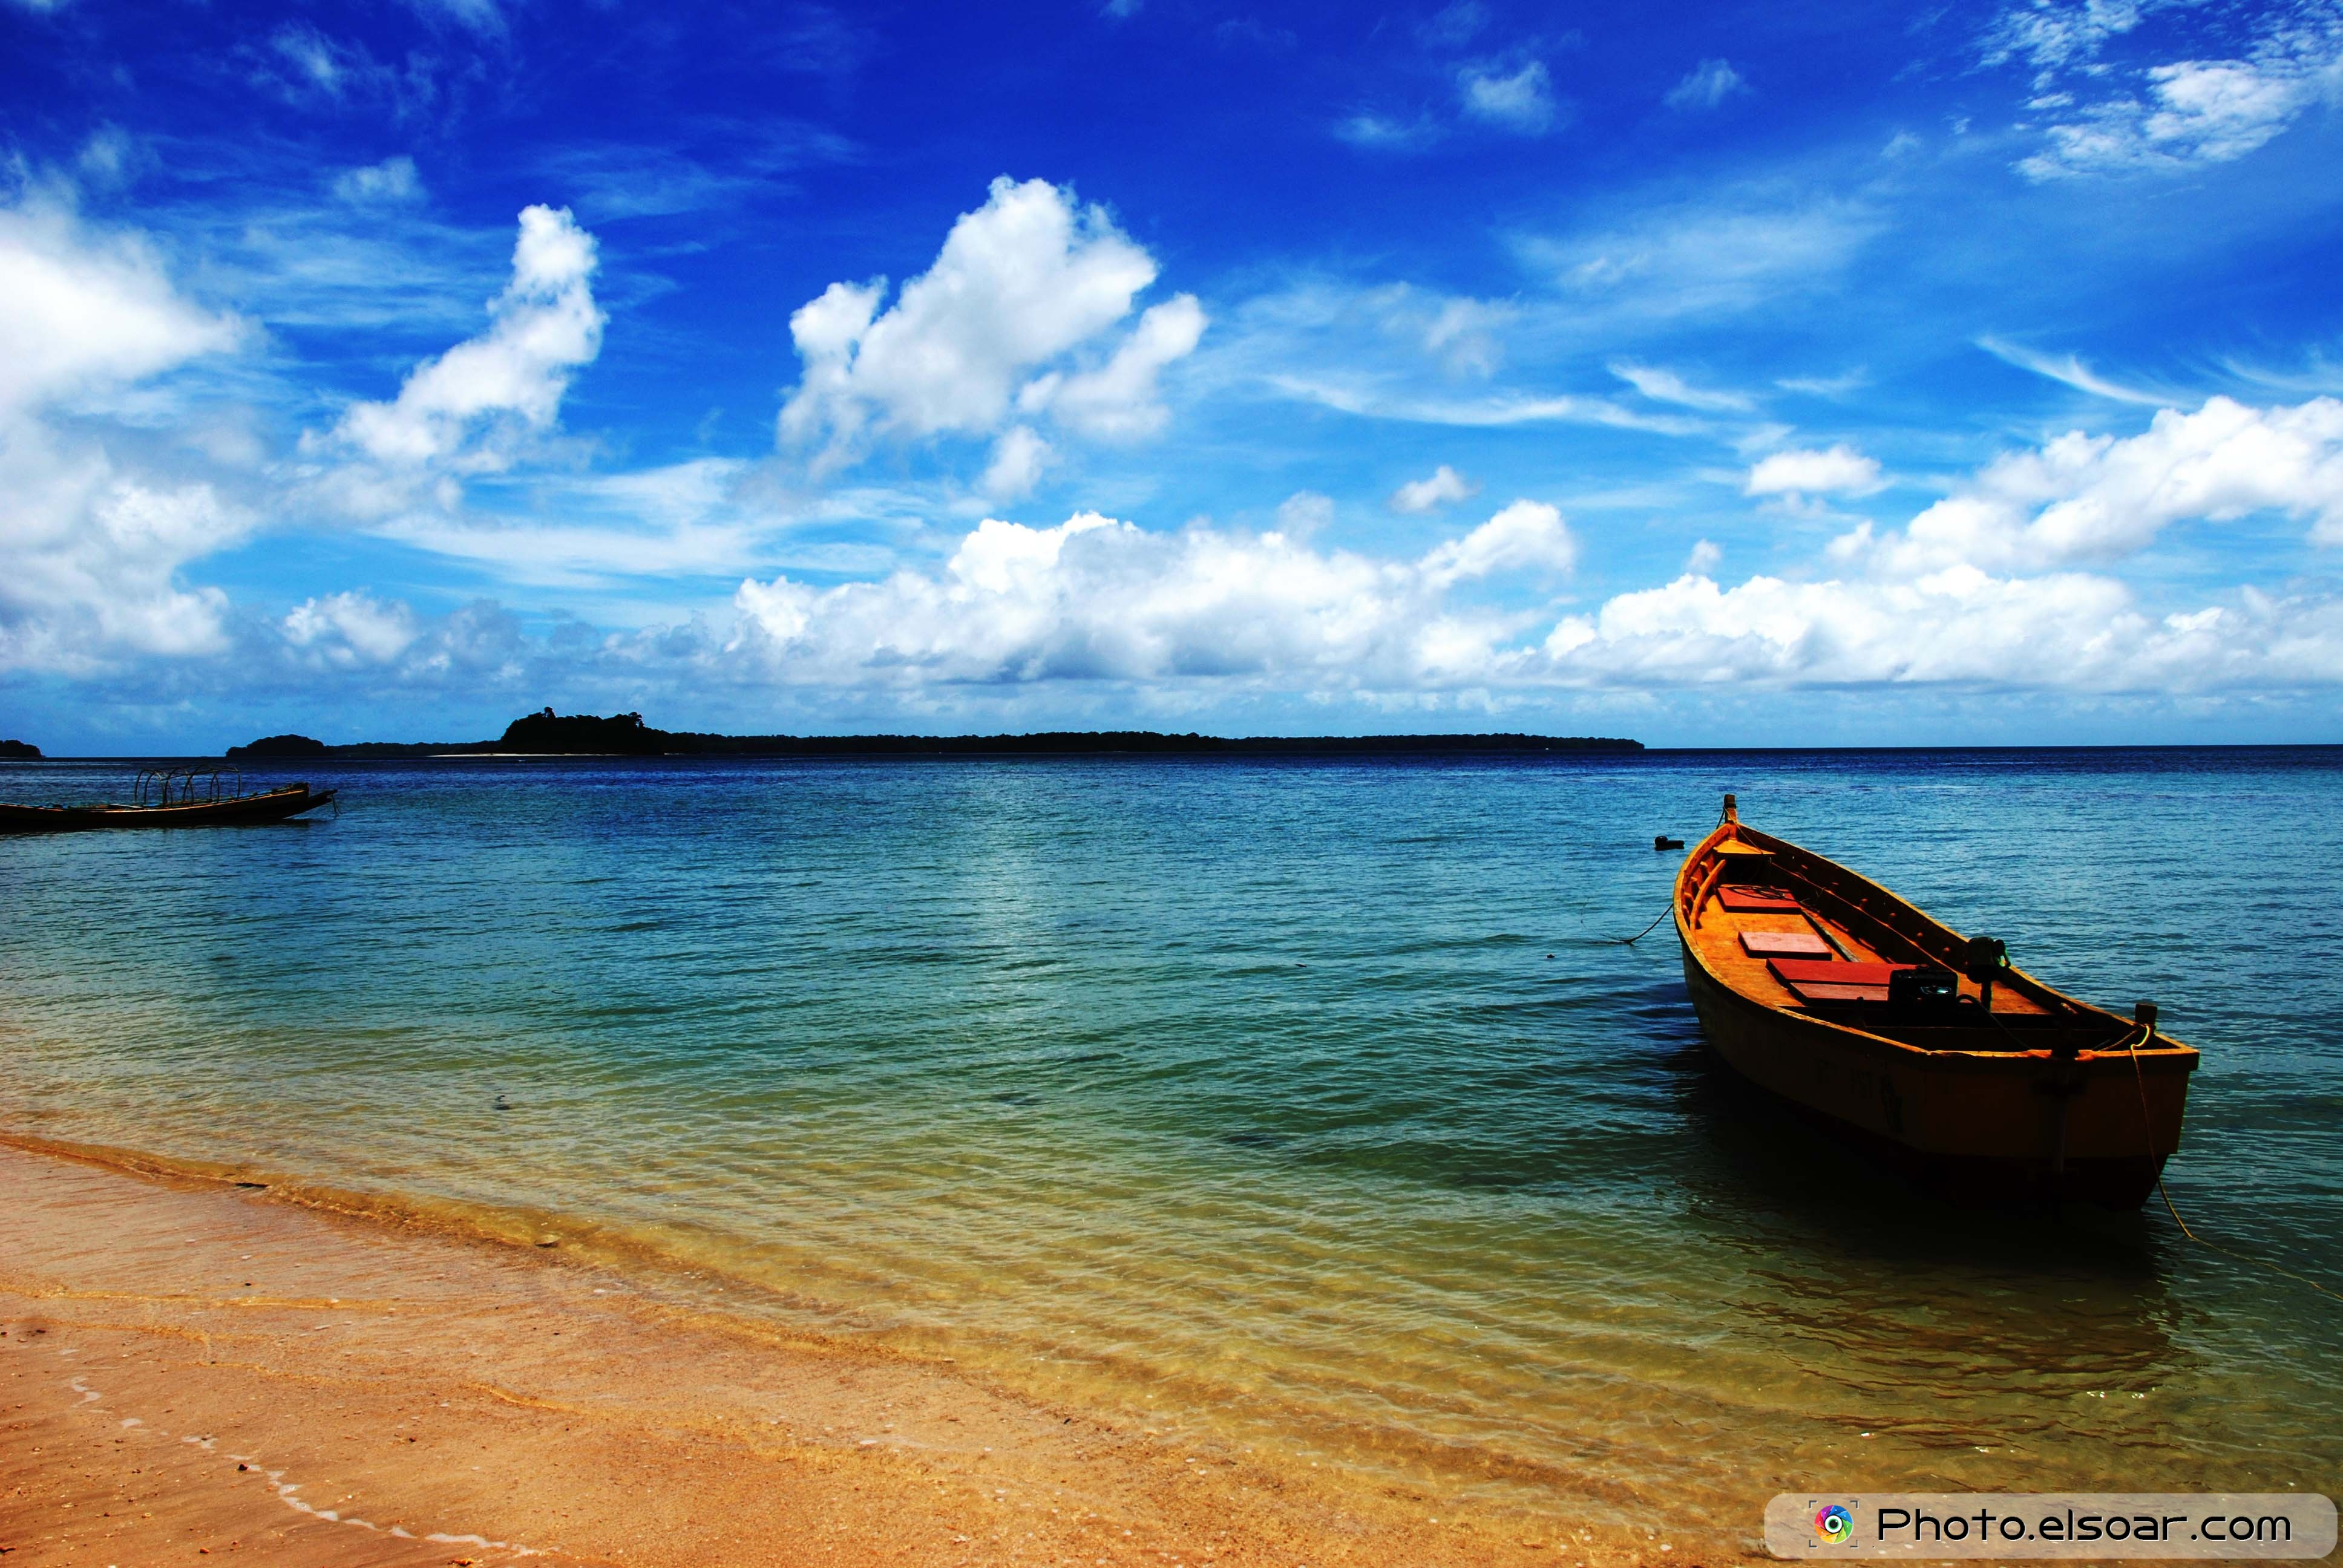 Wallpapers HD Beaches With Boats